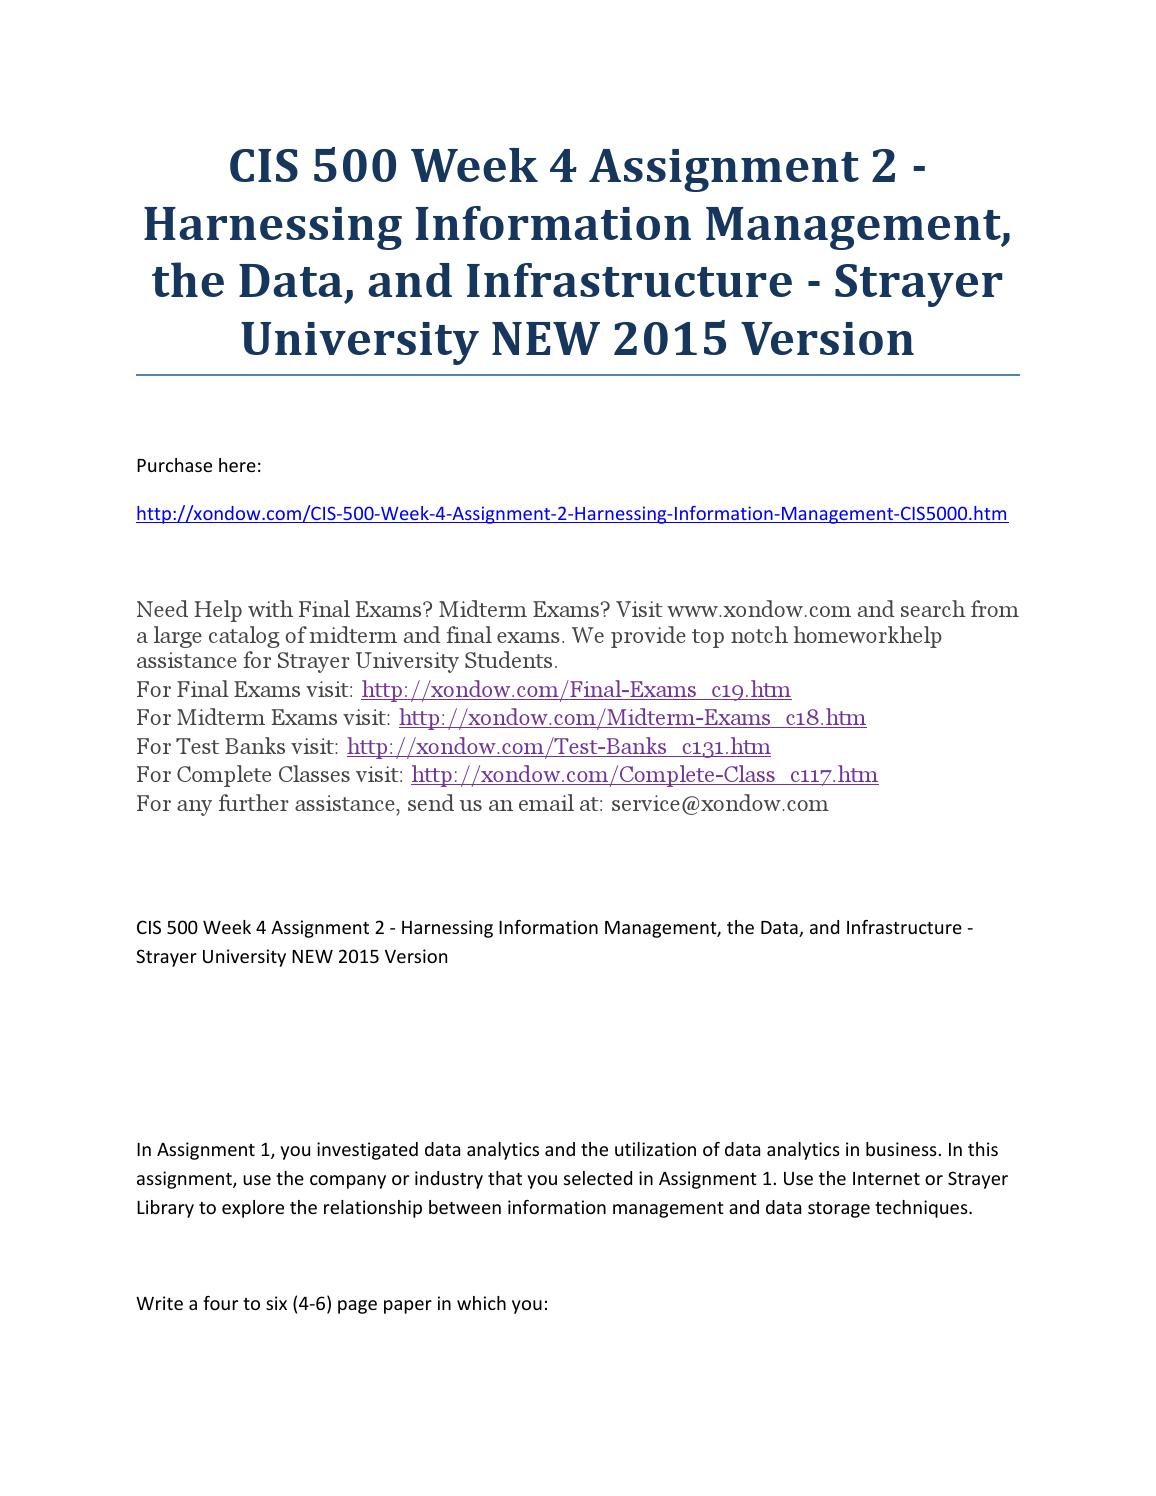 cis500 week 2 assignment Cis 500 week 4 assignment 2 harnessing information management, the data, and infrastructure (2 papers) assignment 2 - harnessing information management, the data, and infrastructure.